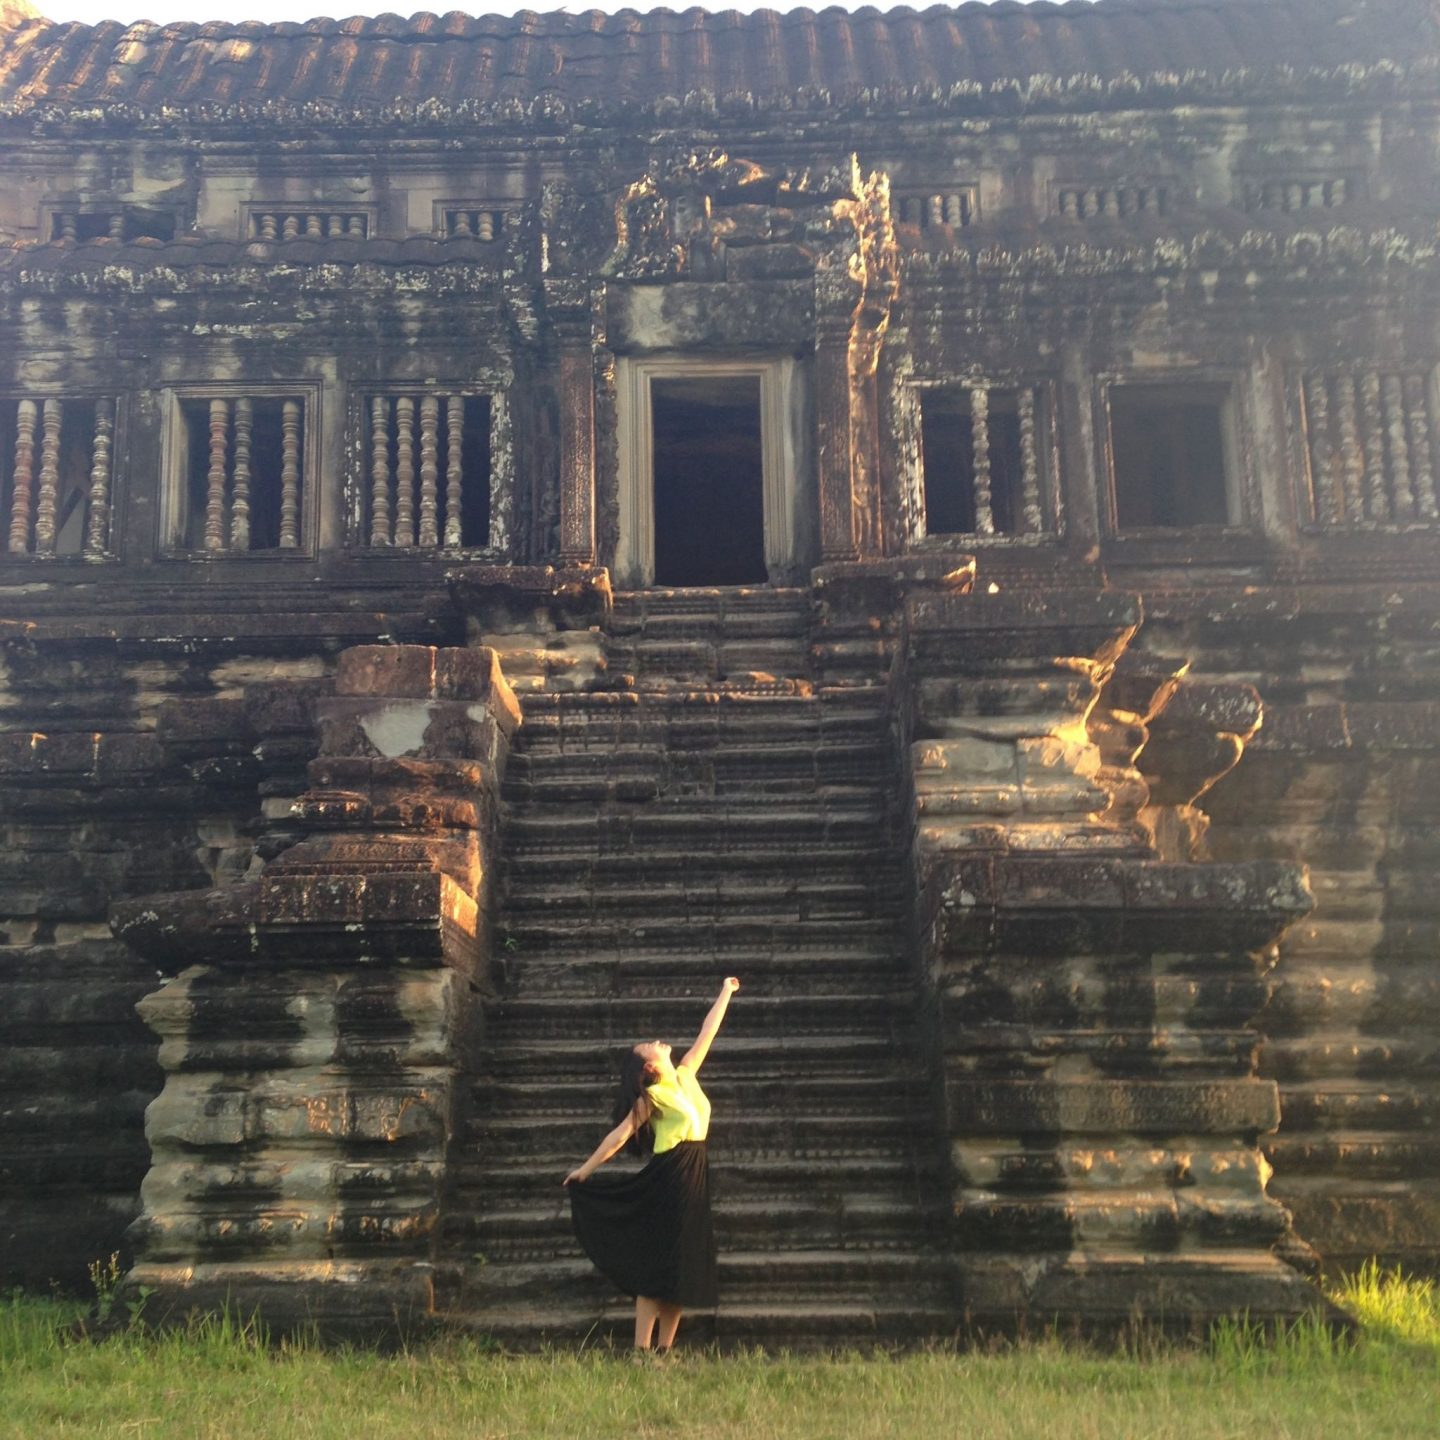 The-Wong-Blog-what-to-do-in-Cambodia-Siem-Reap-travel